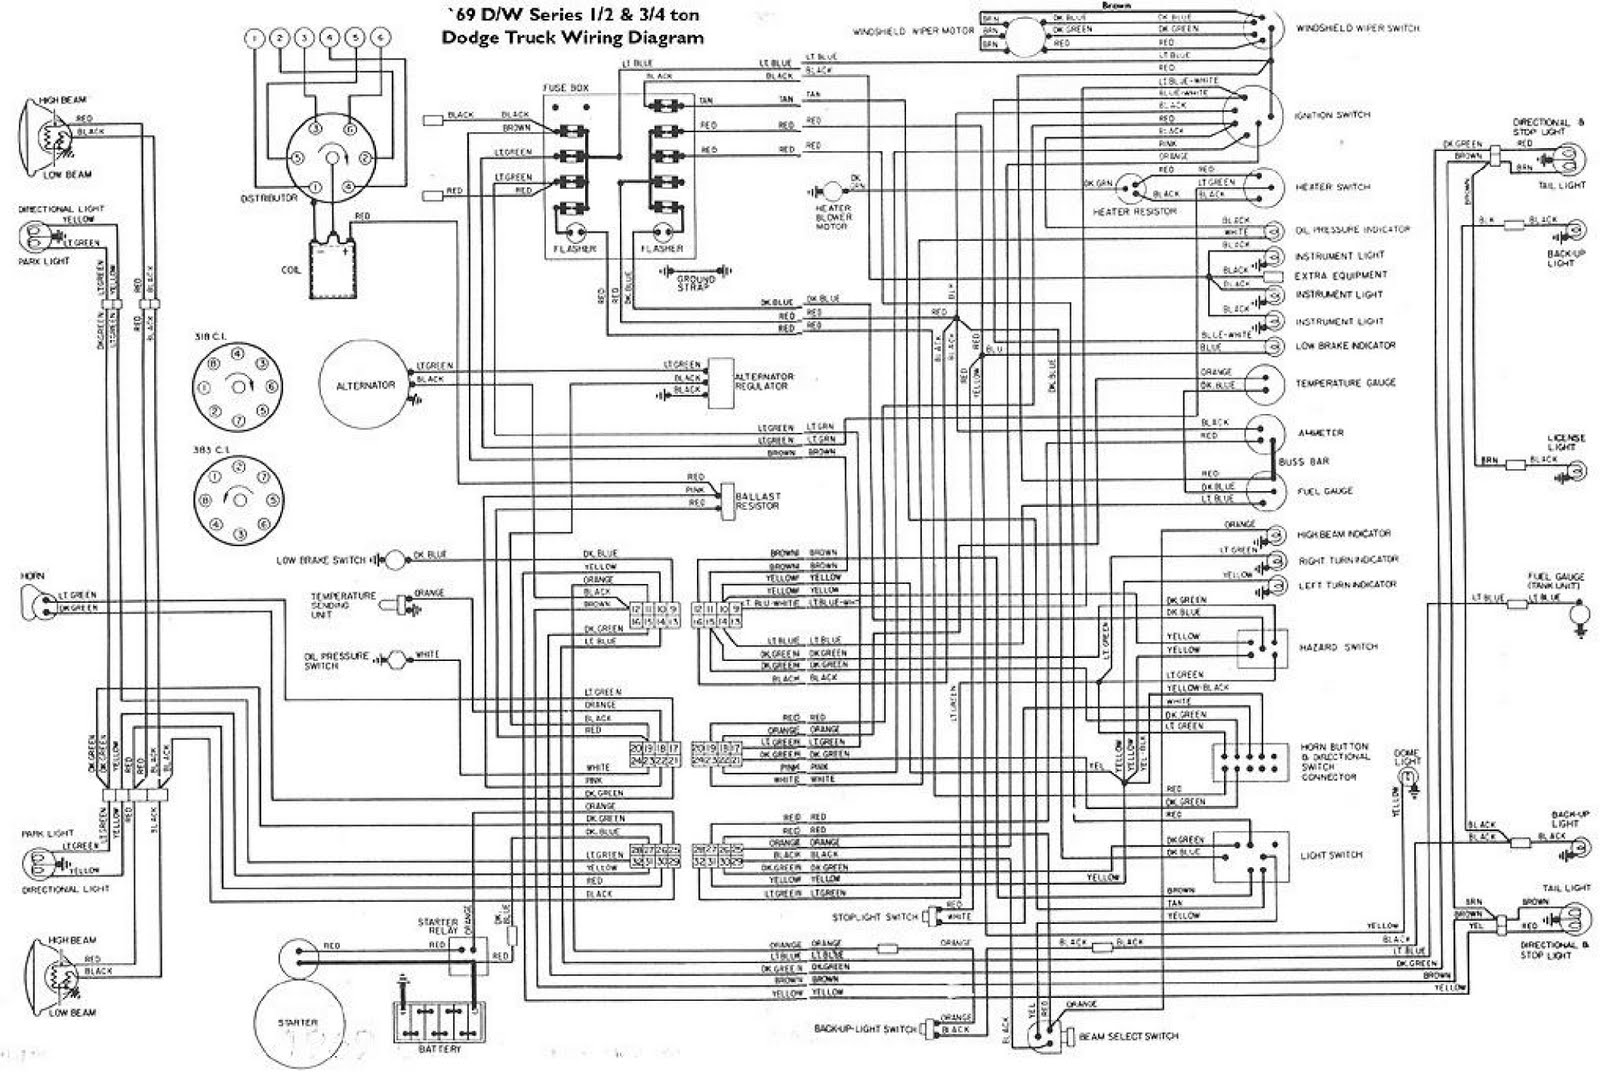 1969's DW Series Dodge Truck Wiring Diagram | Schematic